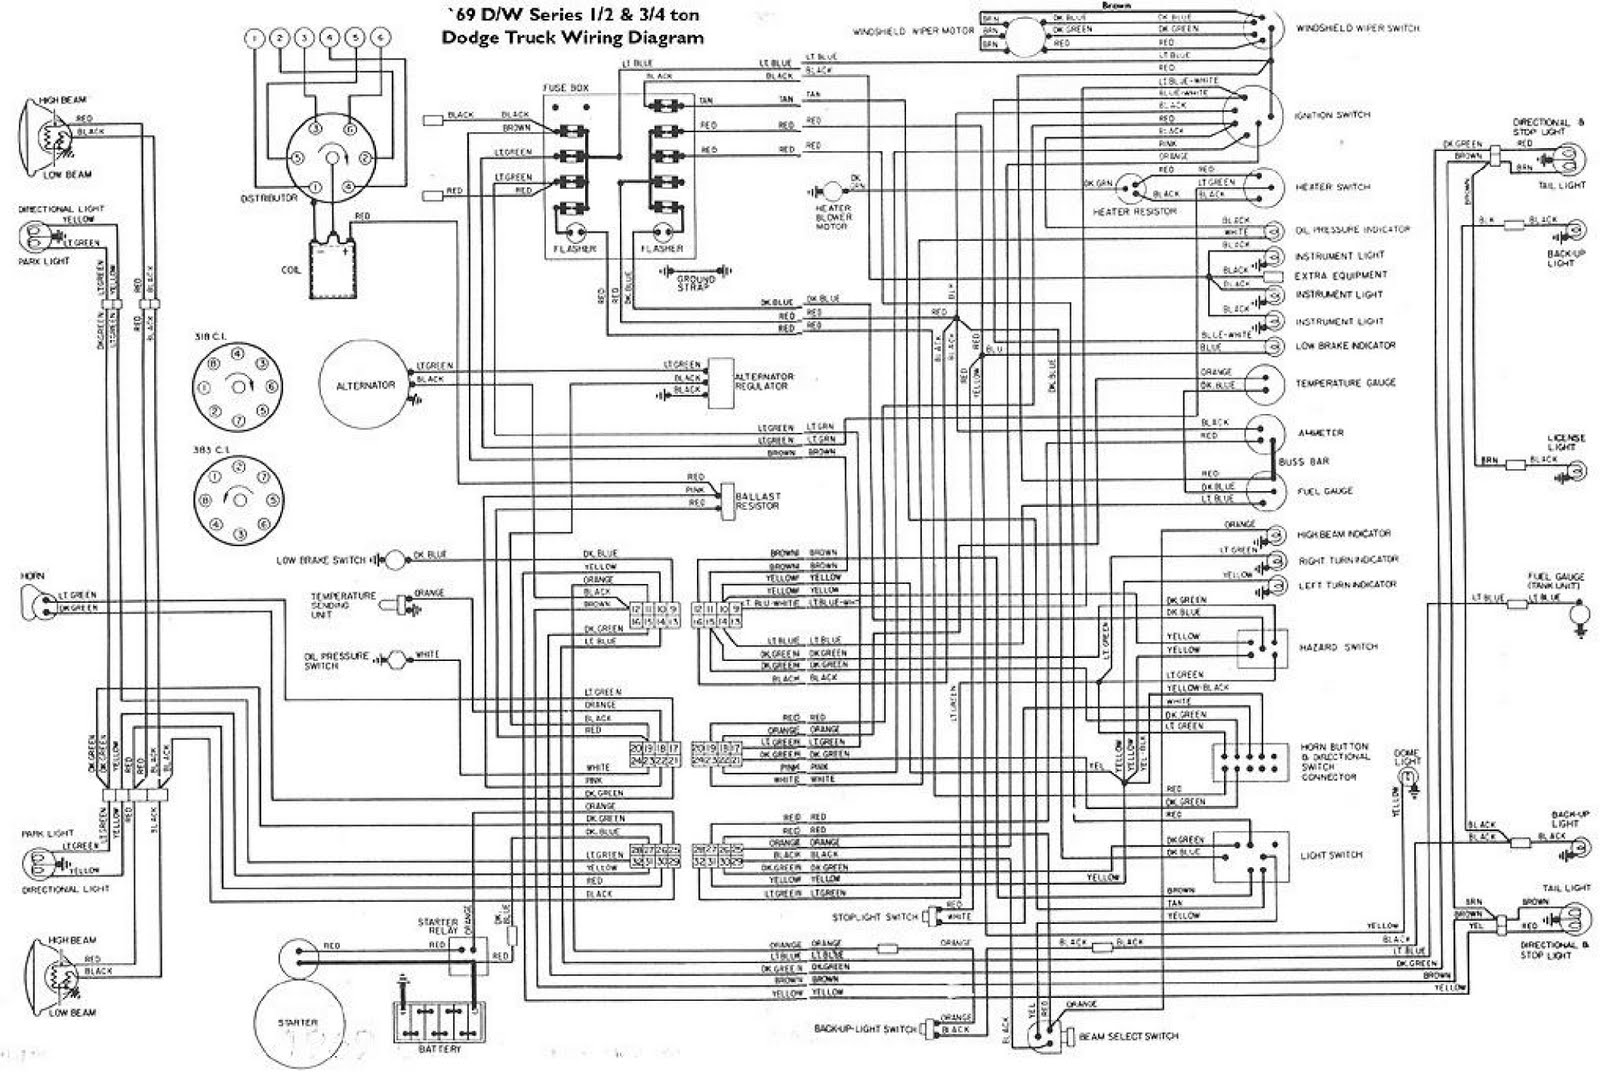 1969's DW Series Dodge Truck Wiring Diagram | Schematic